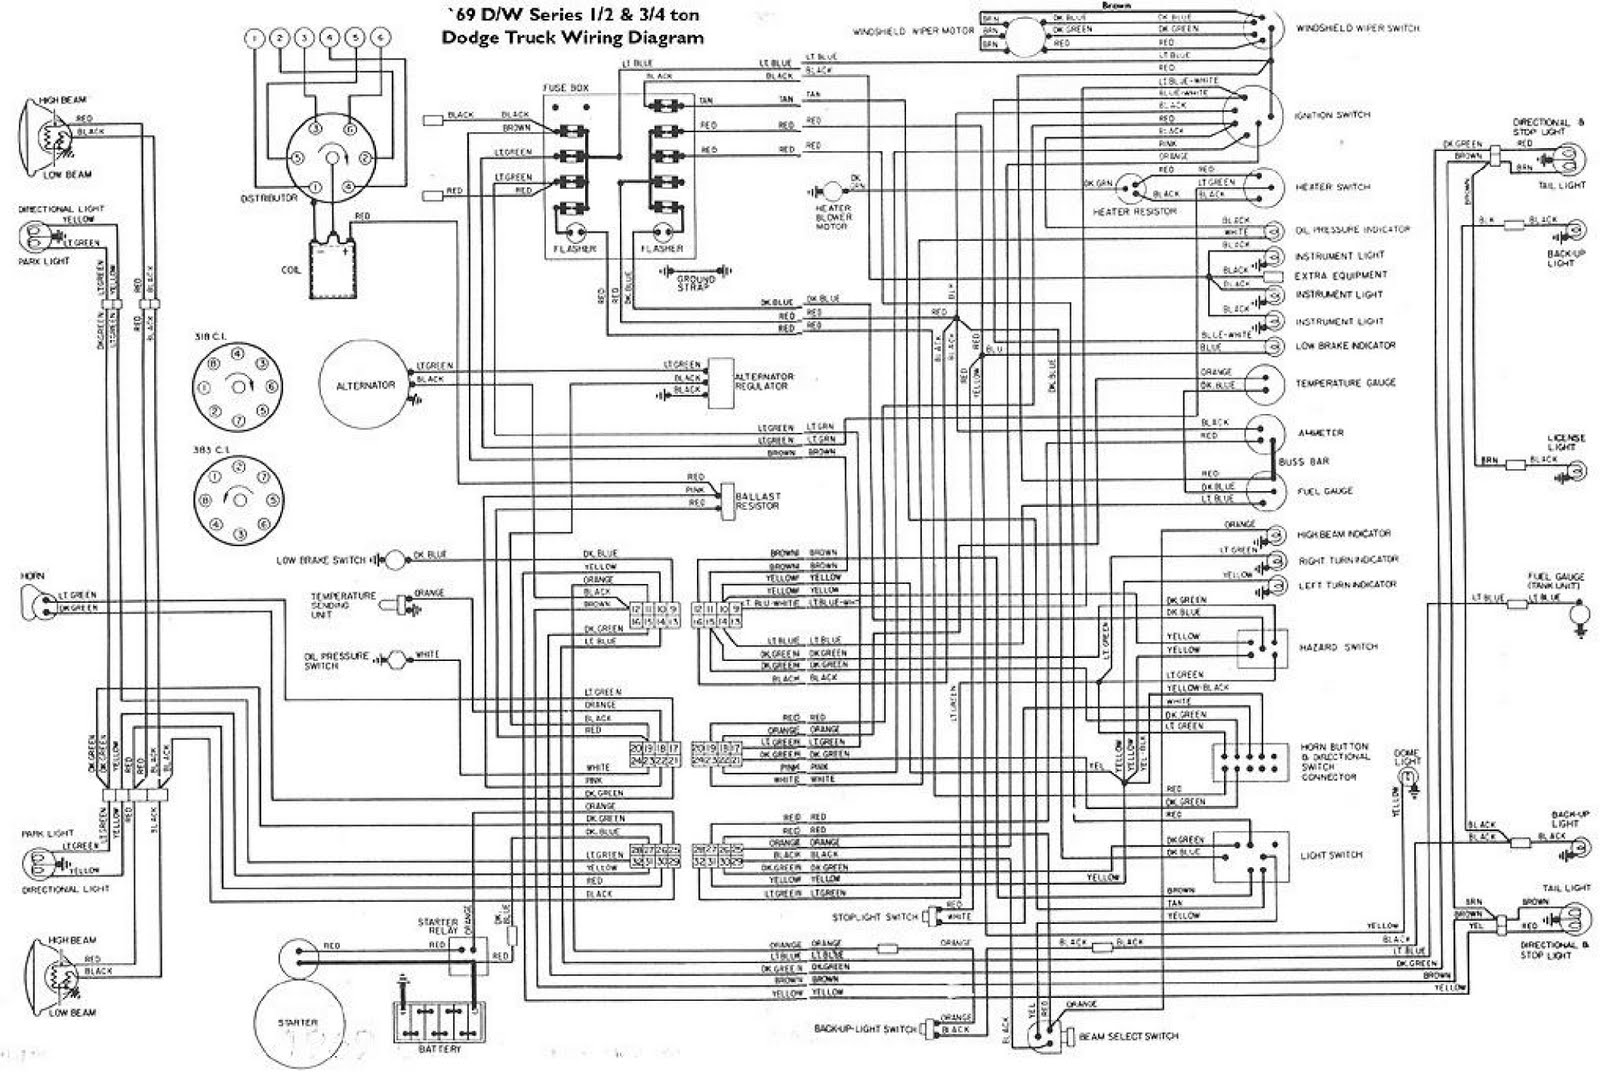 1969's DW Series Dodge Truck Wiring Diagram | Schematic